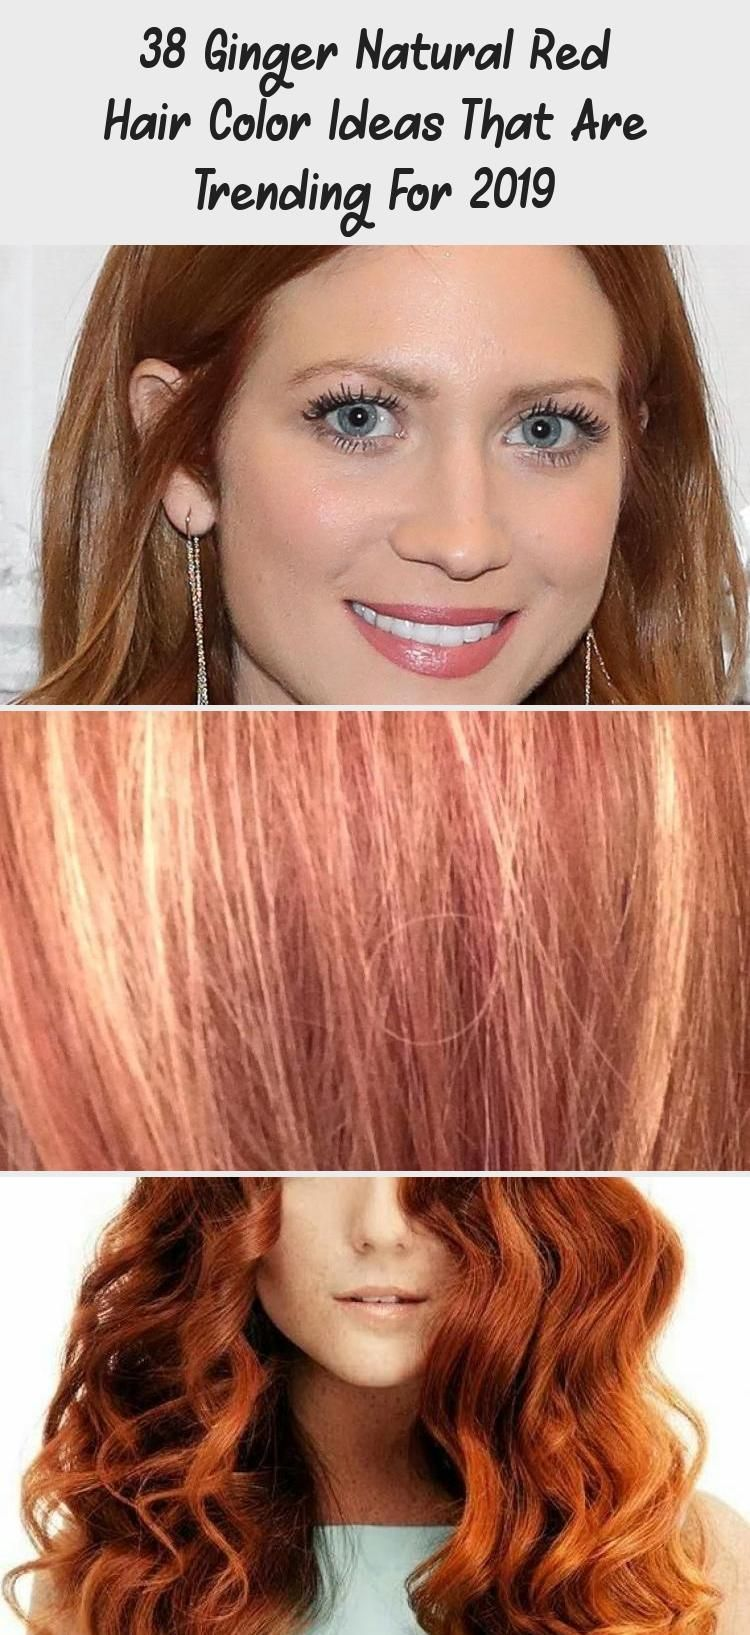 38 Ginger Natural Red Hair Color Ideas That Are Trending